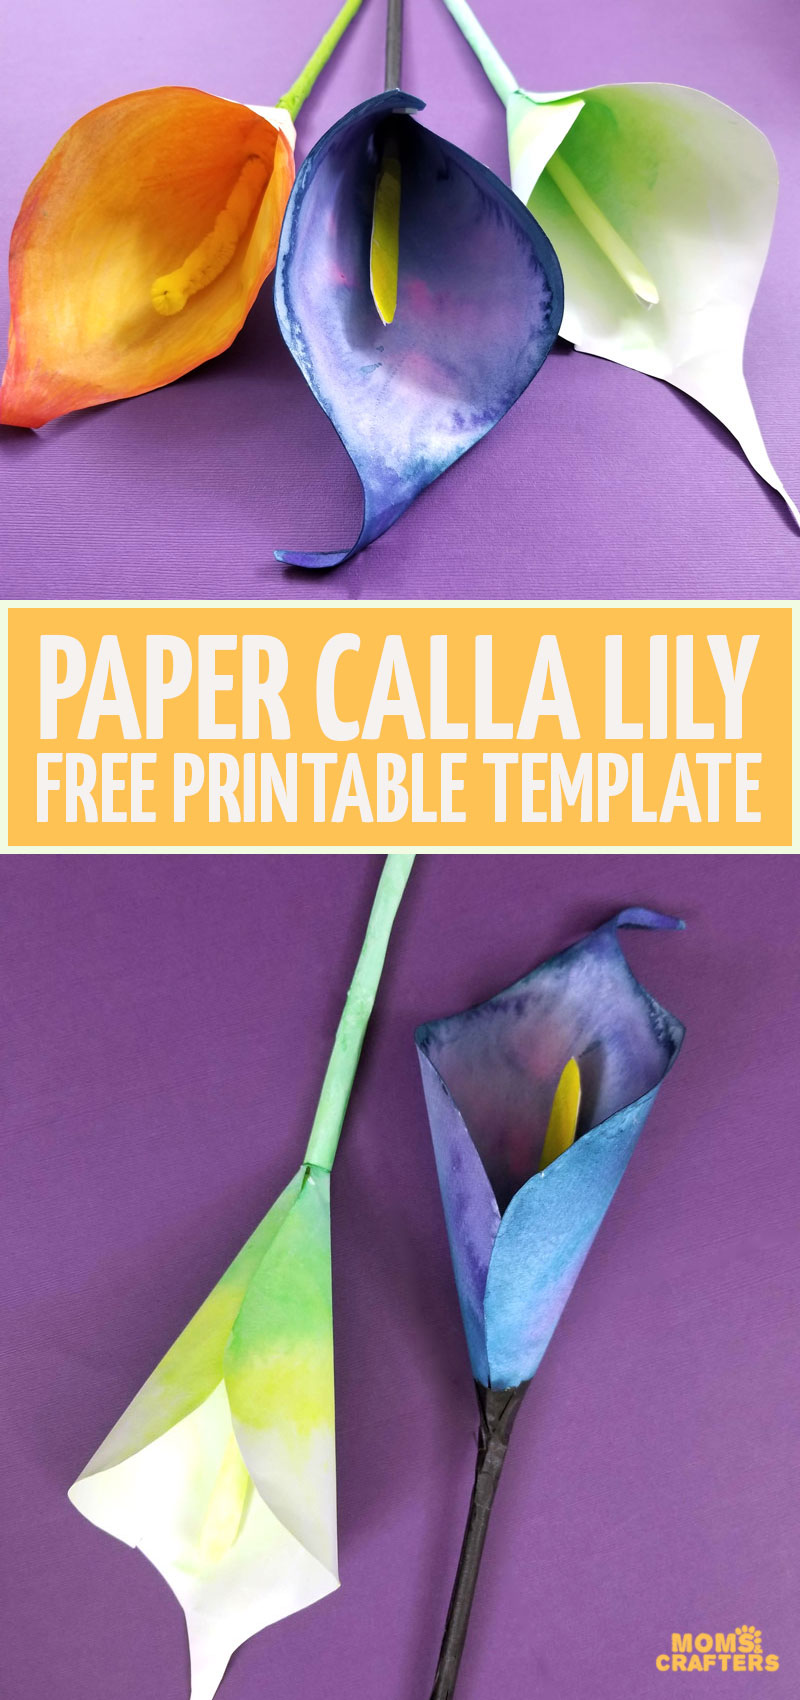 Want to learn a beautiful process for making watercolor paper flowers? Click to learn how to make a paper calla lily with free printable templates. These paper flowers are perfect for Mother's Day!